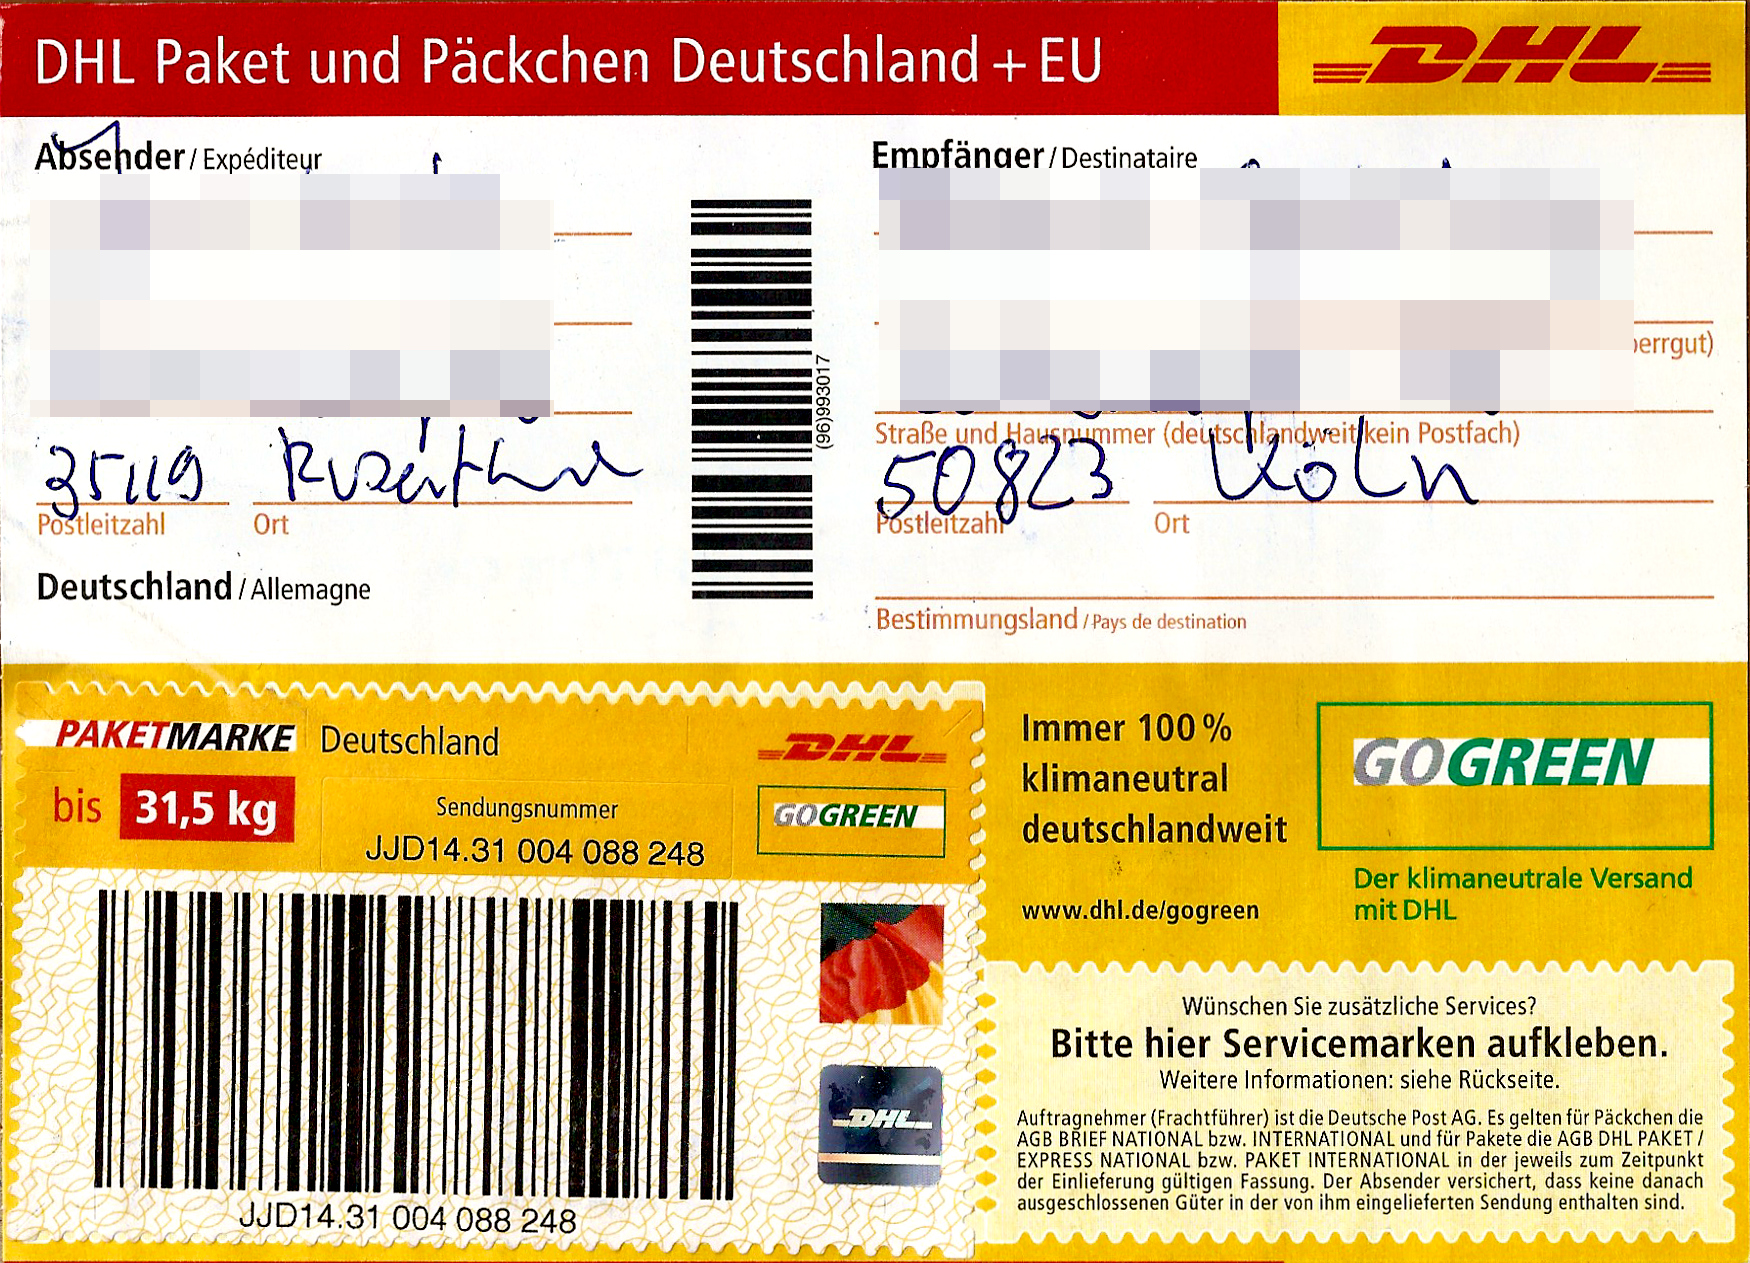 file paketaufkleber dhl paket mit paketmarke bis 31 5 kg. Black Bedroom Furniture Sets. Home Design Ideas